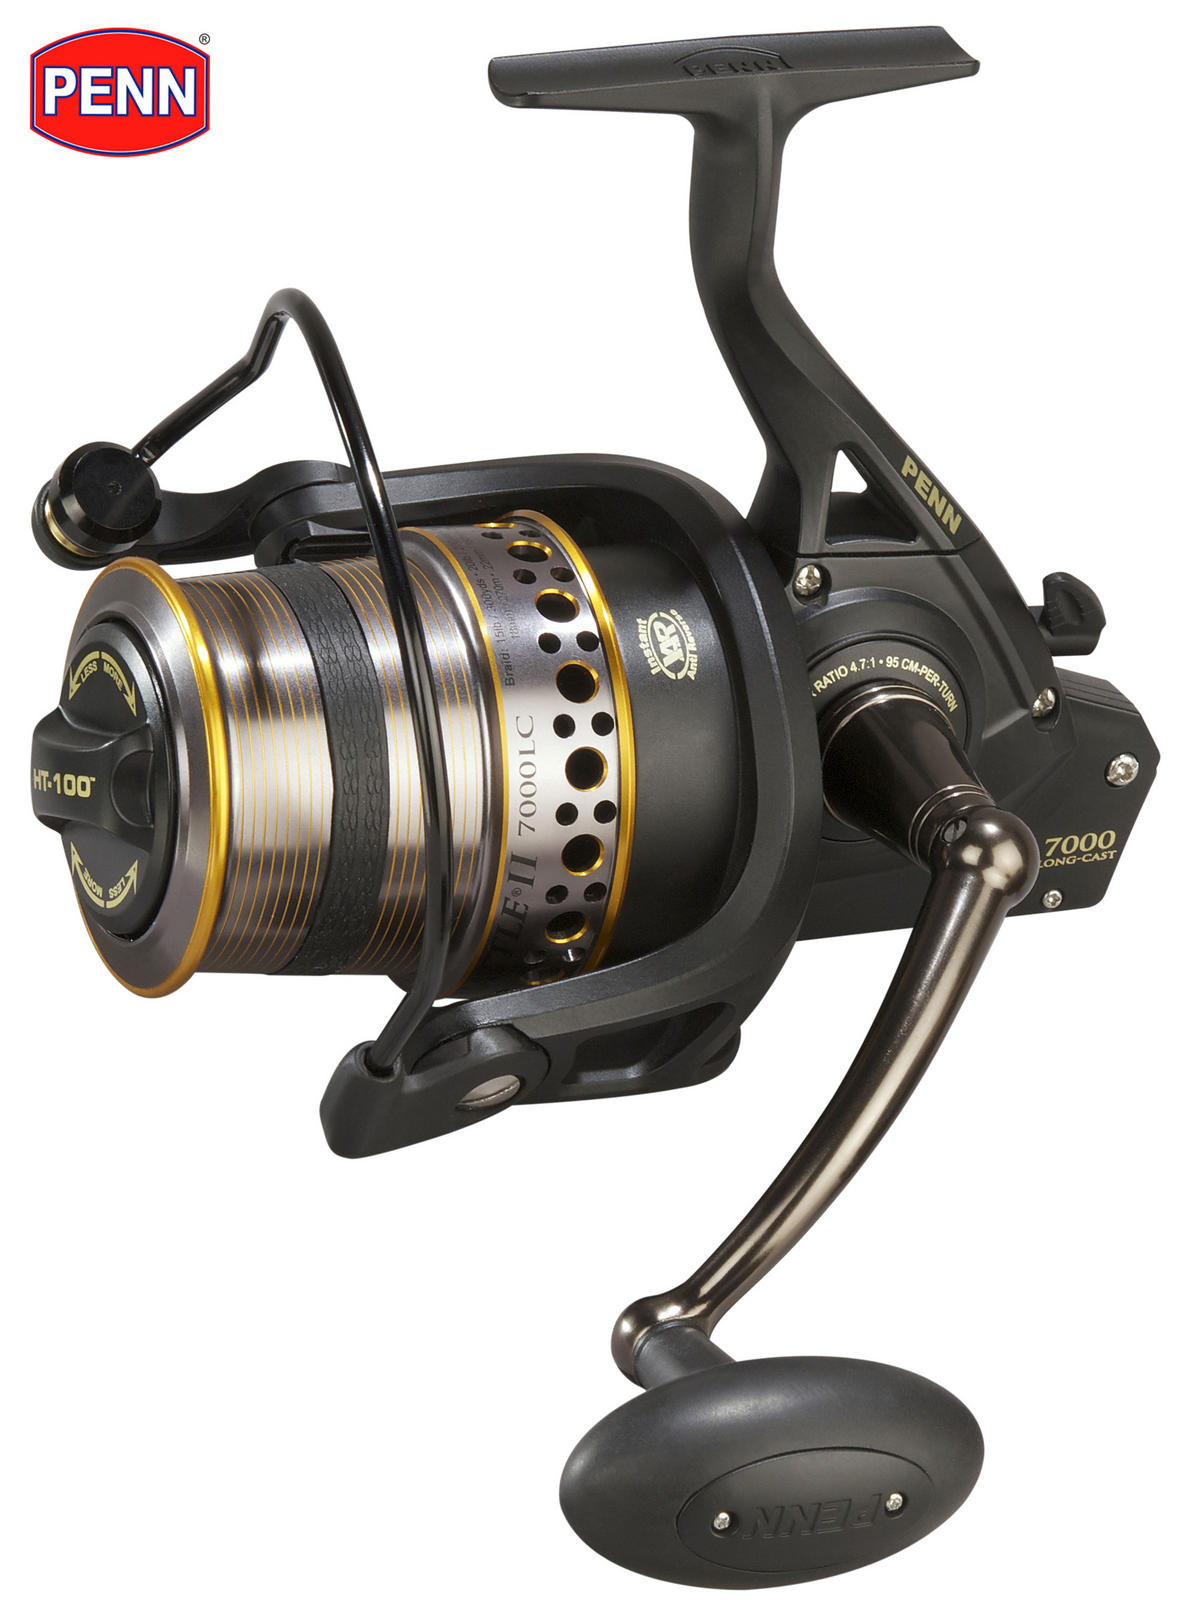 New PENN Battle II 8000 Long Cast Fishing Reel Model No. BTL8000LCEU